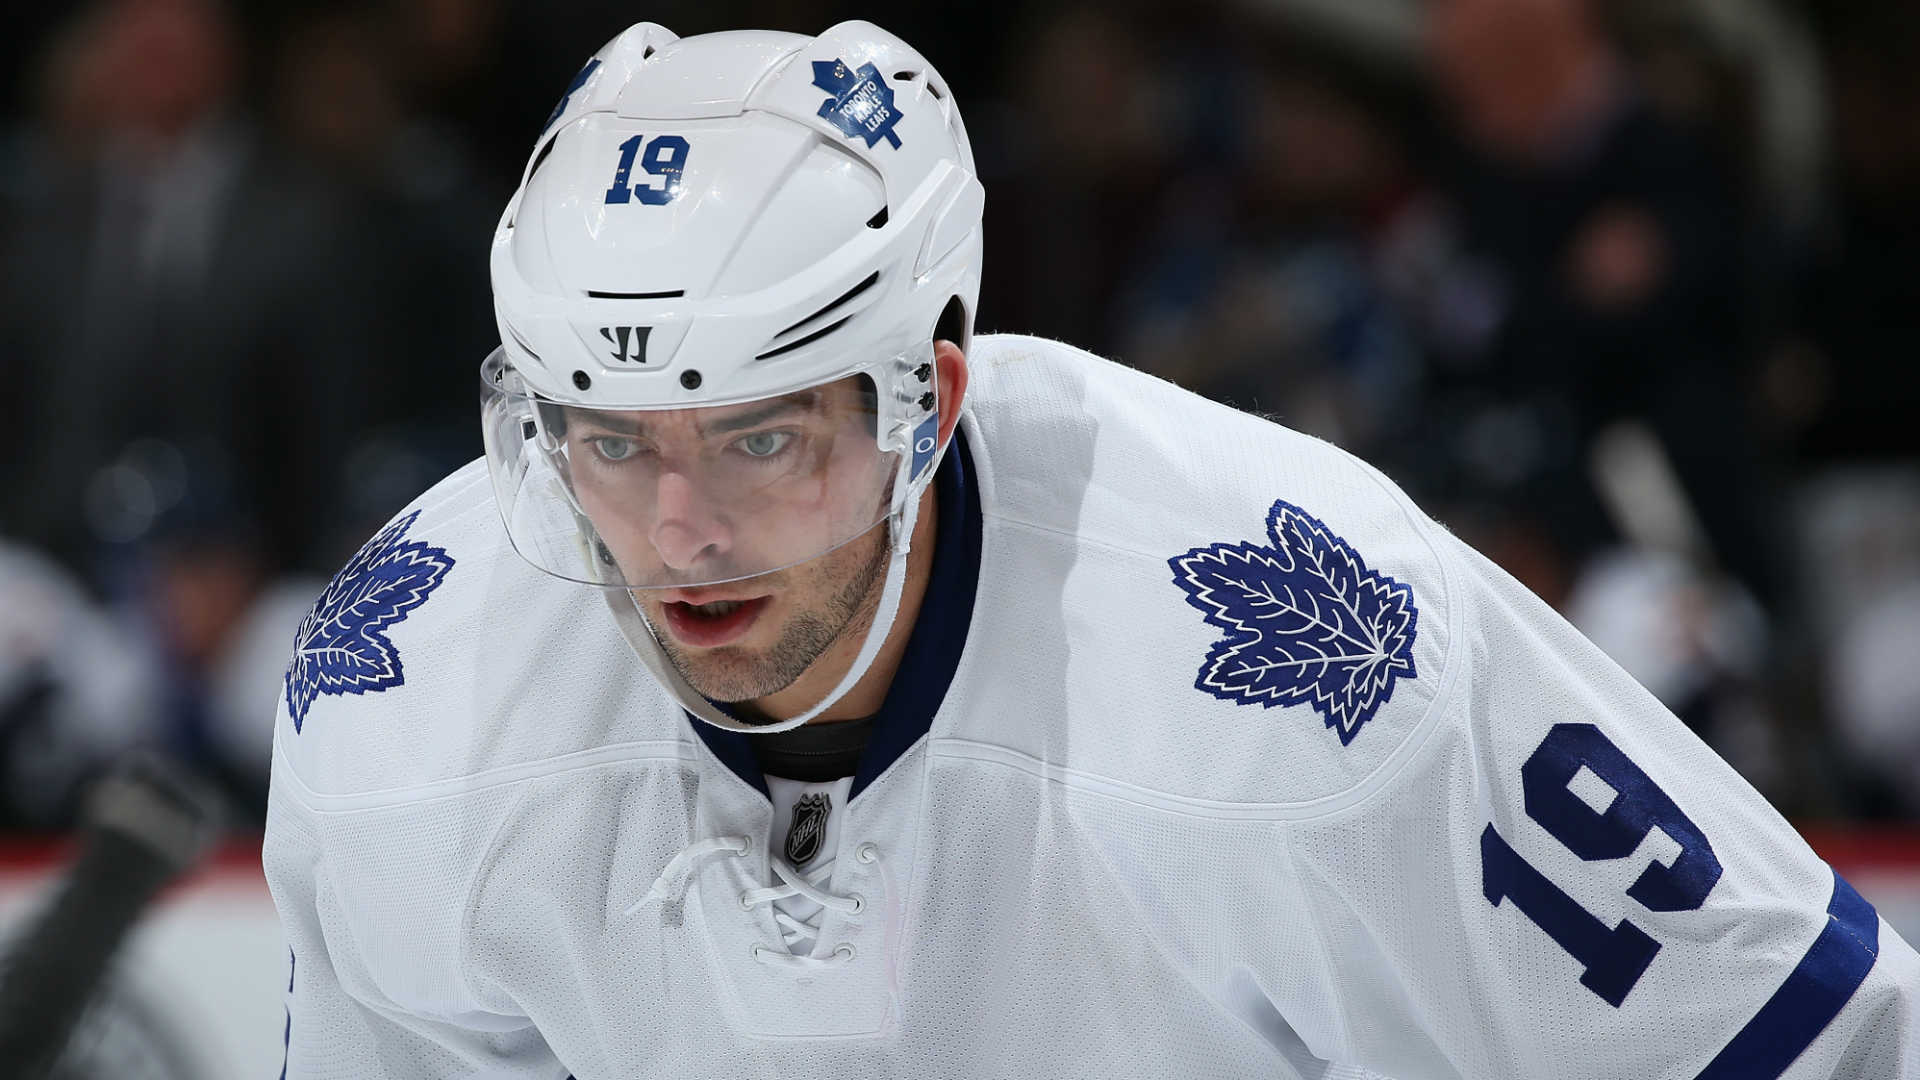 Joffrey Lupul apologizes for writing Maple Leafs 'cheat'